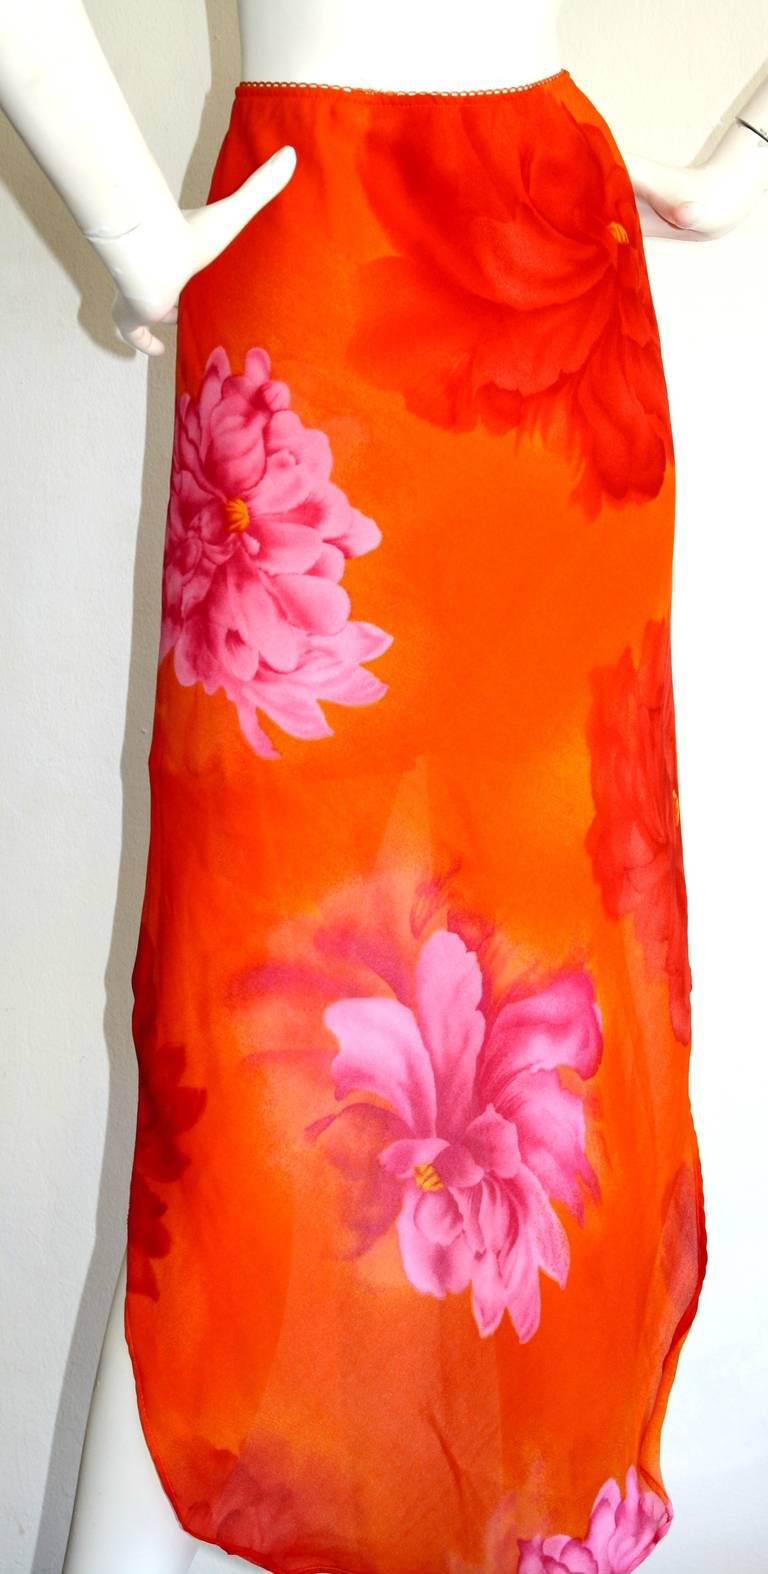 Pierre Cardin Vintage 1980s Runway 80s Hi Lo Pink Orange Ombré Mermaid Skirt For Sale 1